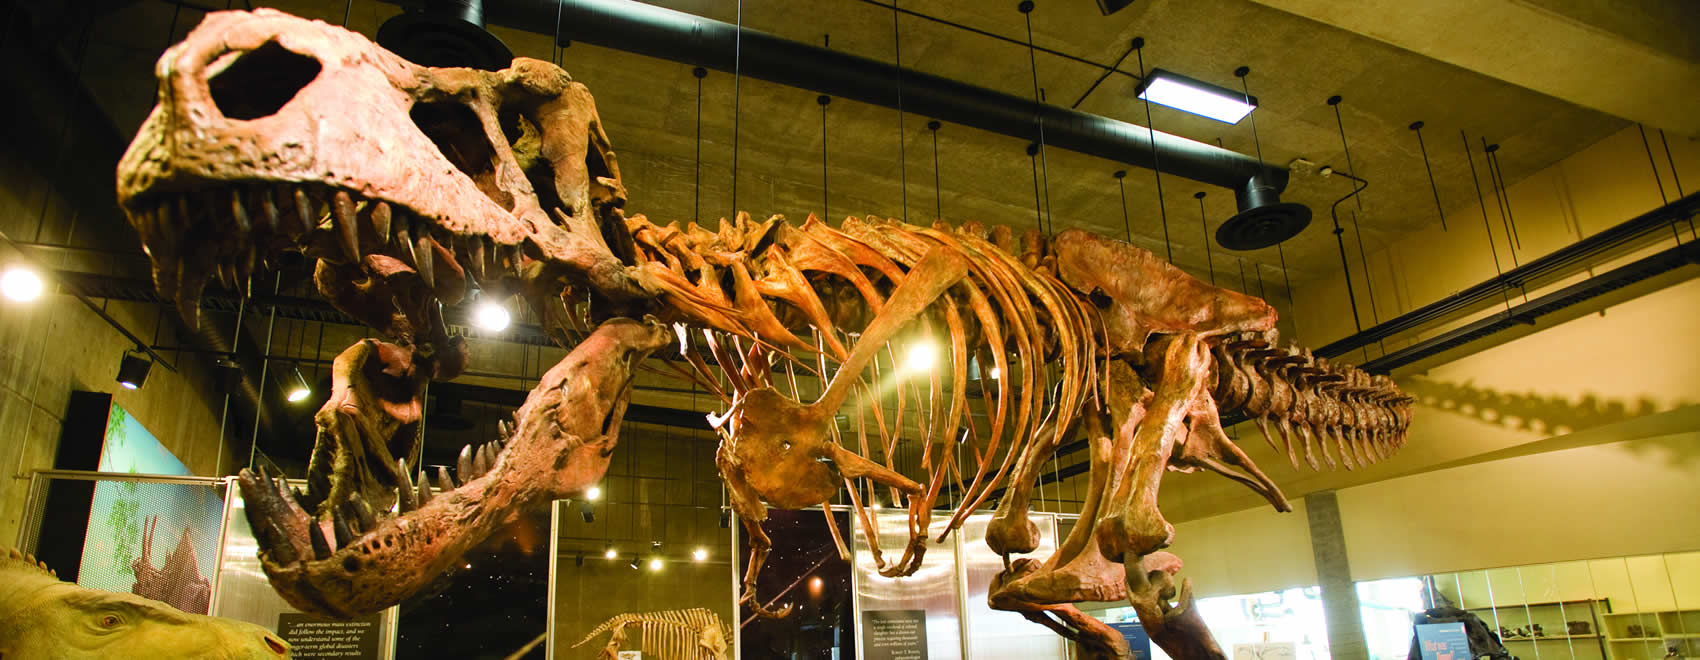 T rex Discovery Centre